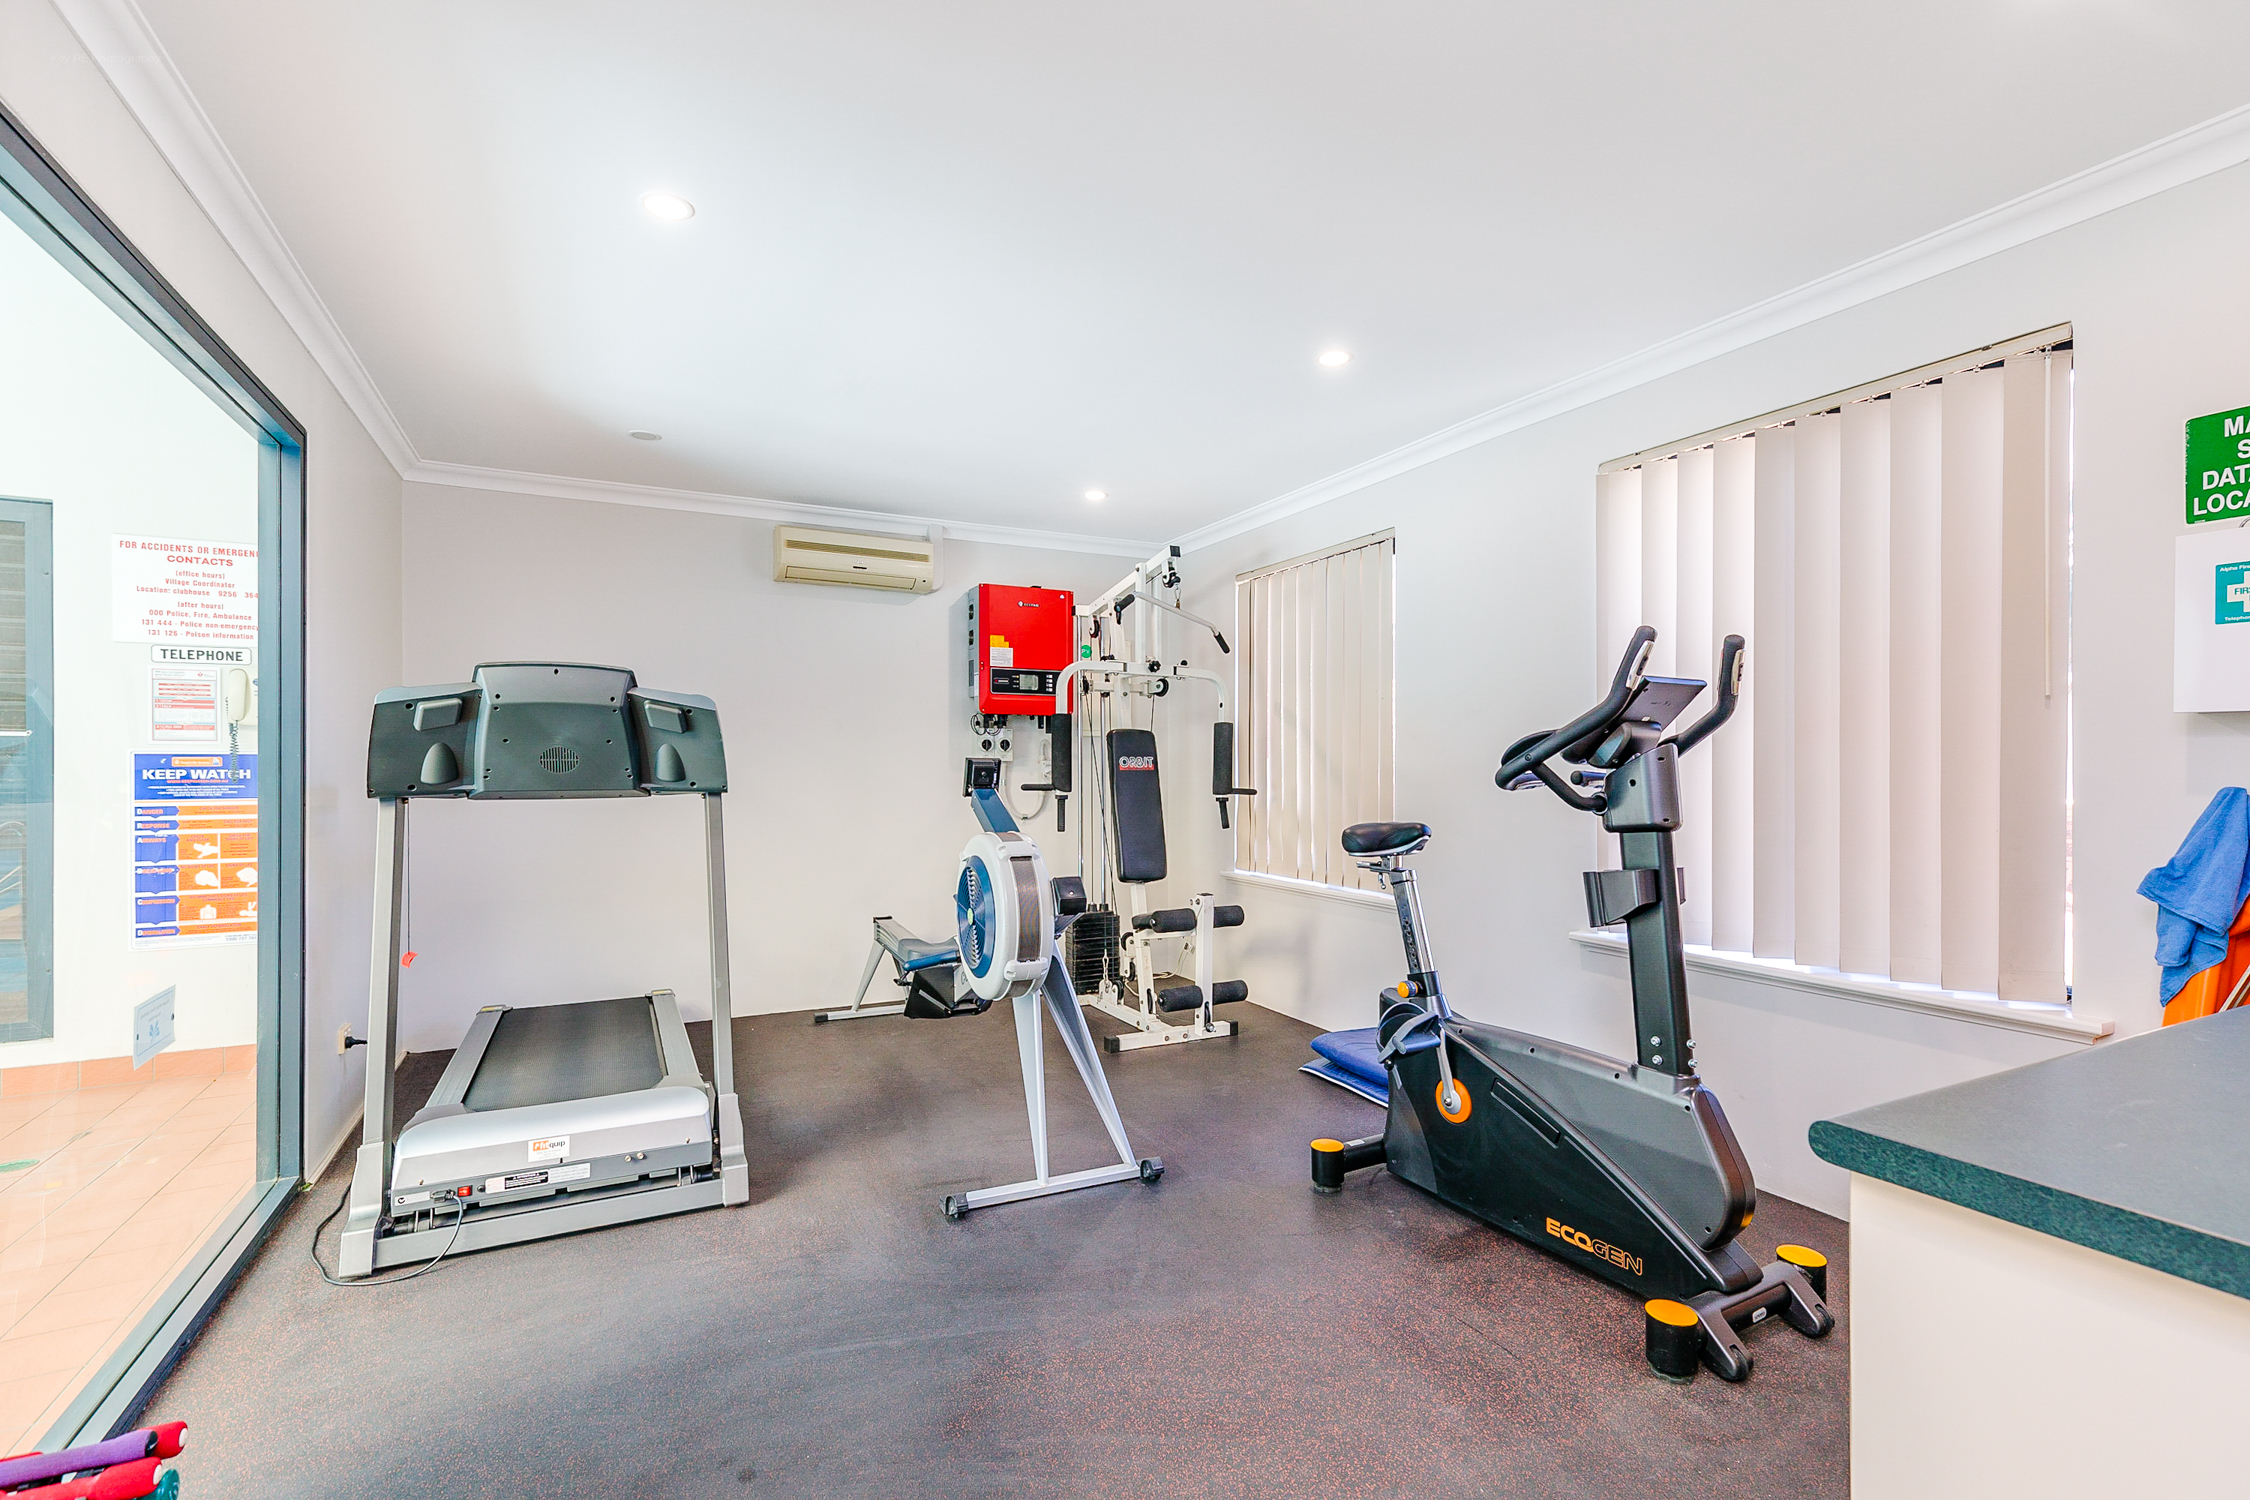 Property for sale in THORNLIE, Villa 97 / 41 Geographe Way : Attree Real Estate